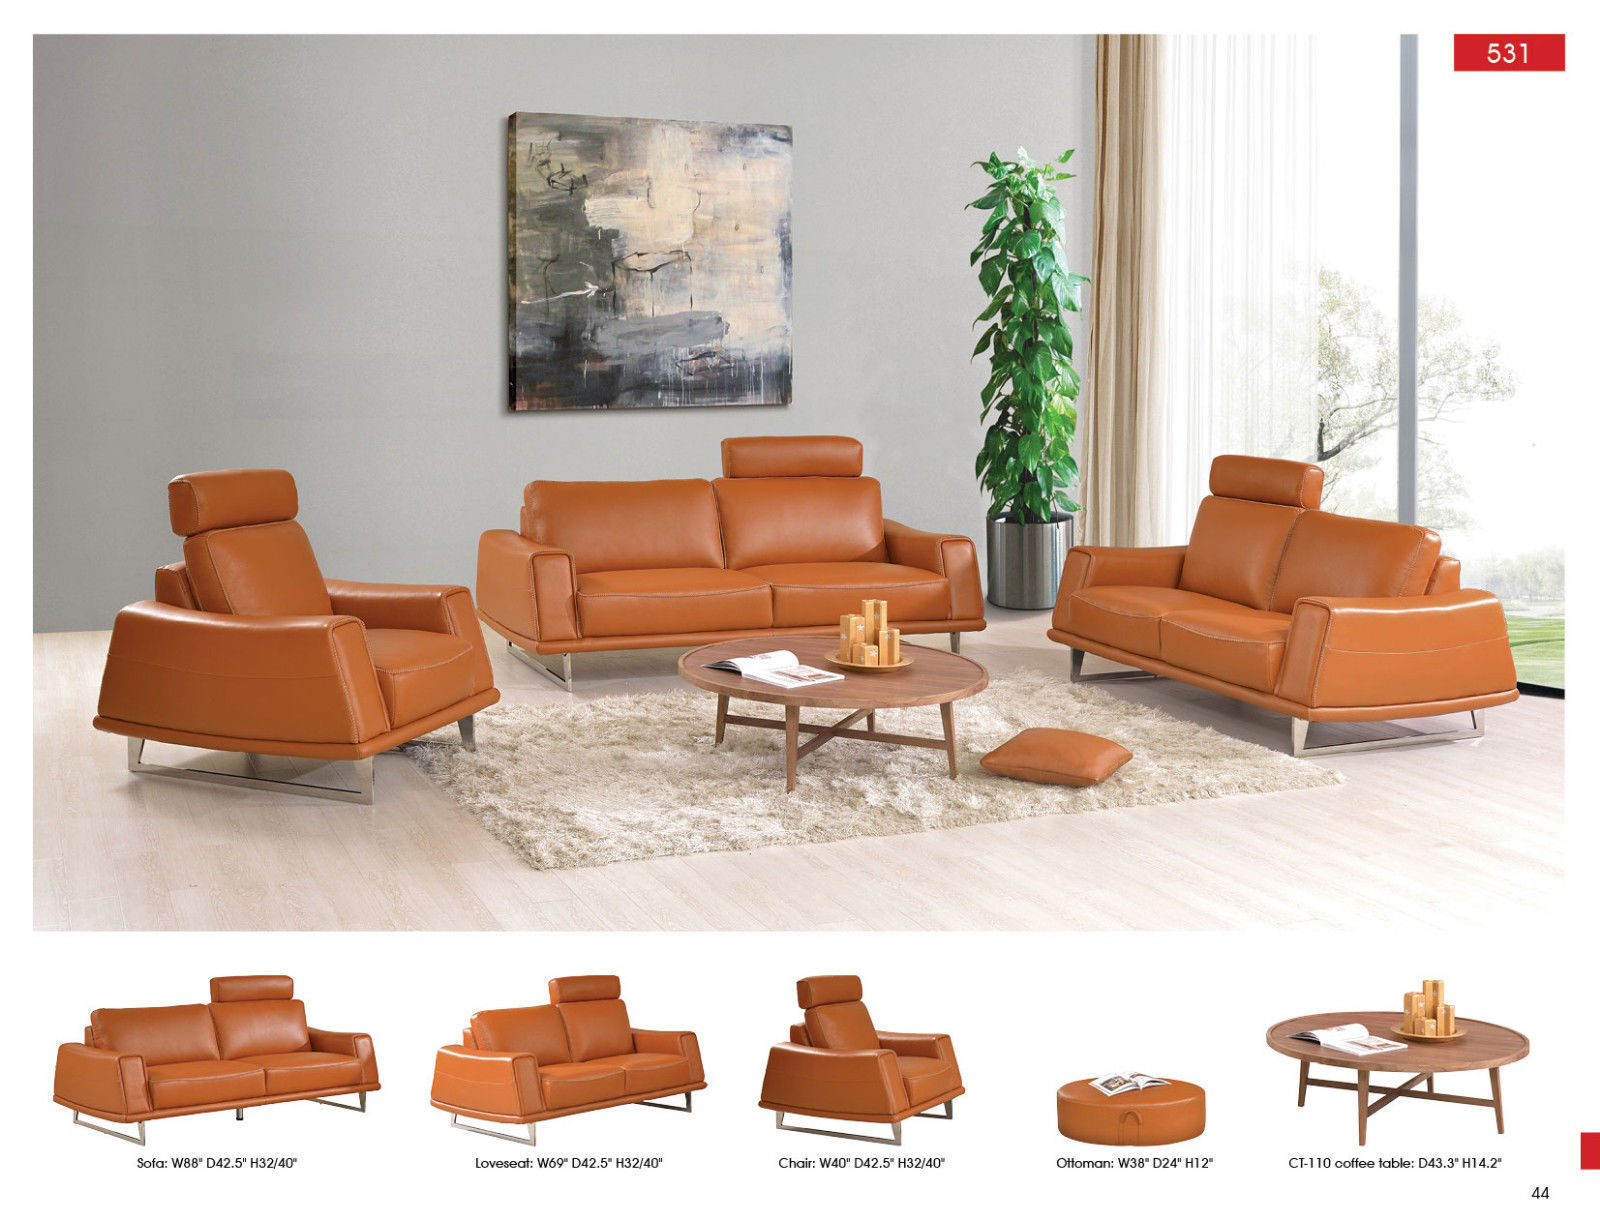 ESF 531 Leather Living Room Sofa Orange Thick Chic Contemporary Morden Style